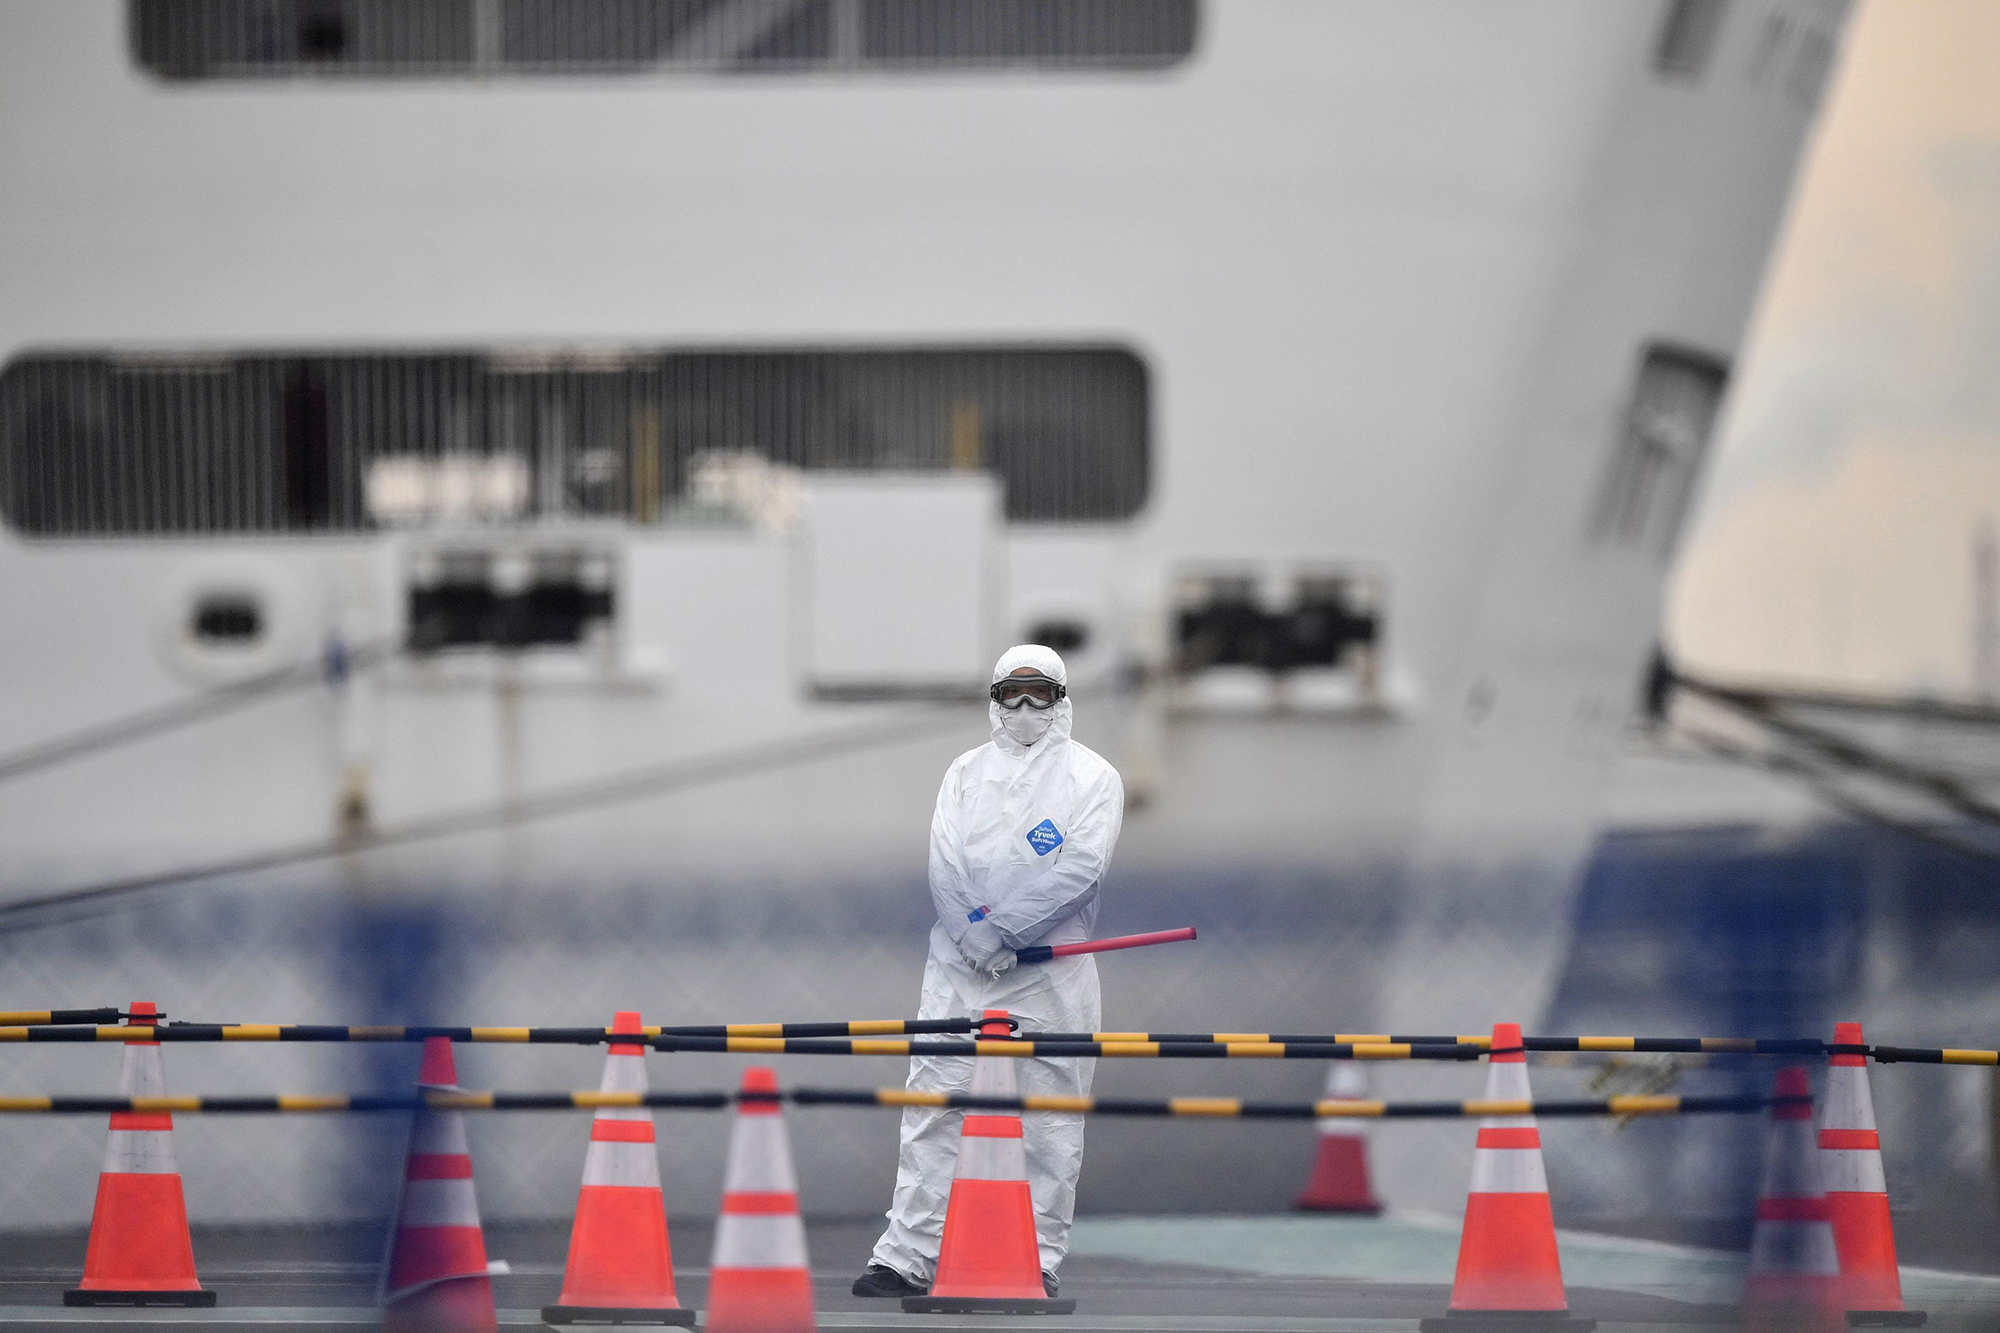 An official in protective gear stands near the Diamond Princess cruise ship, quarantined at Yokohama Port in Yokohama, Japan, on Thursday, February 20.